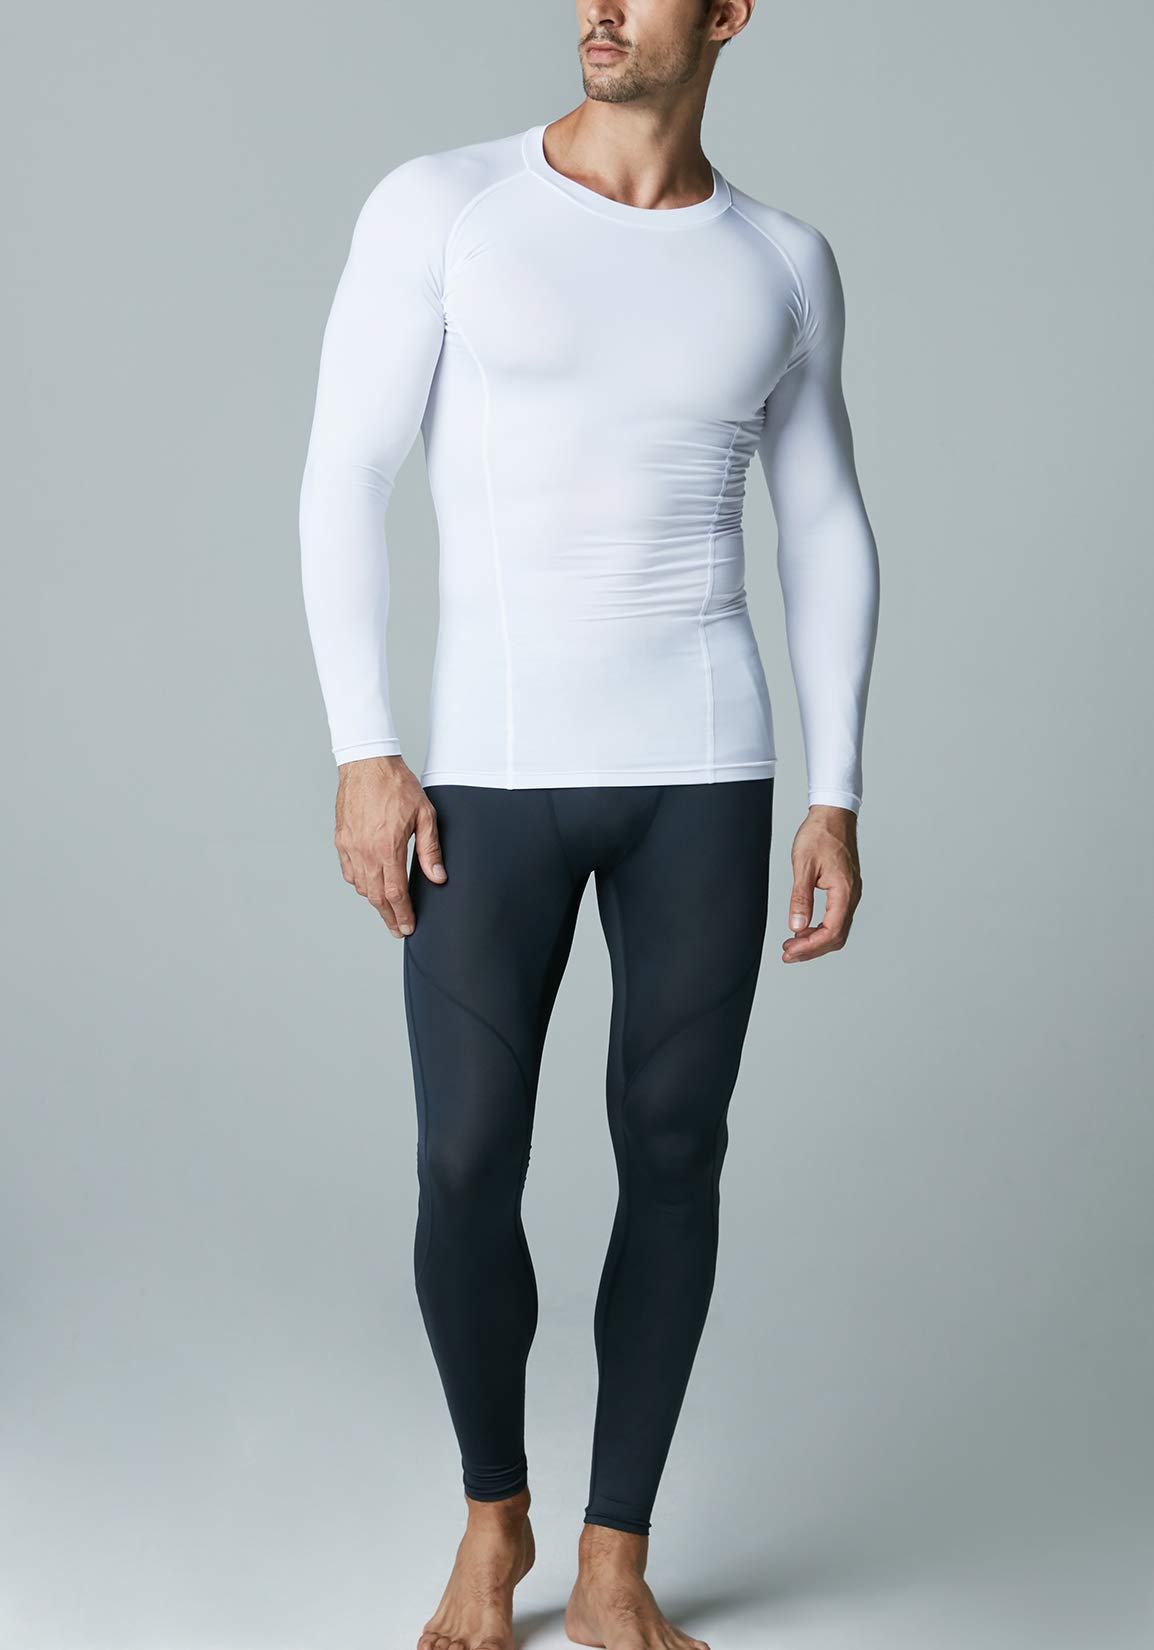 ATHLIO AO-BLS01-WHT_Large Men's (Pack of 3) Cool Dry Compression Long Sleeve Baselayer Athletic Sports T-Shirts Tops BLS01 by ATHLIO (Image #5)